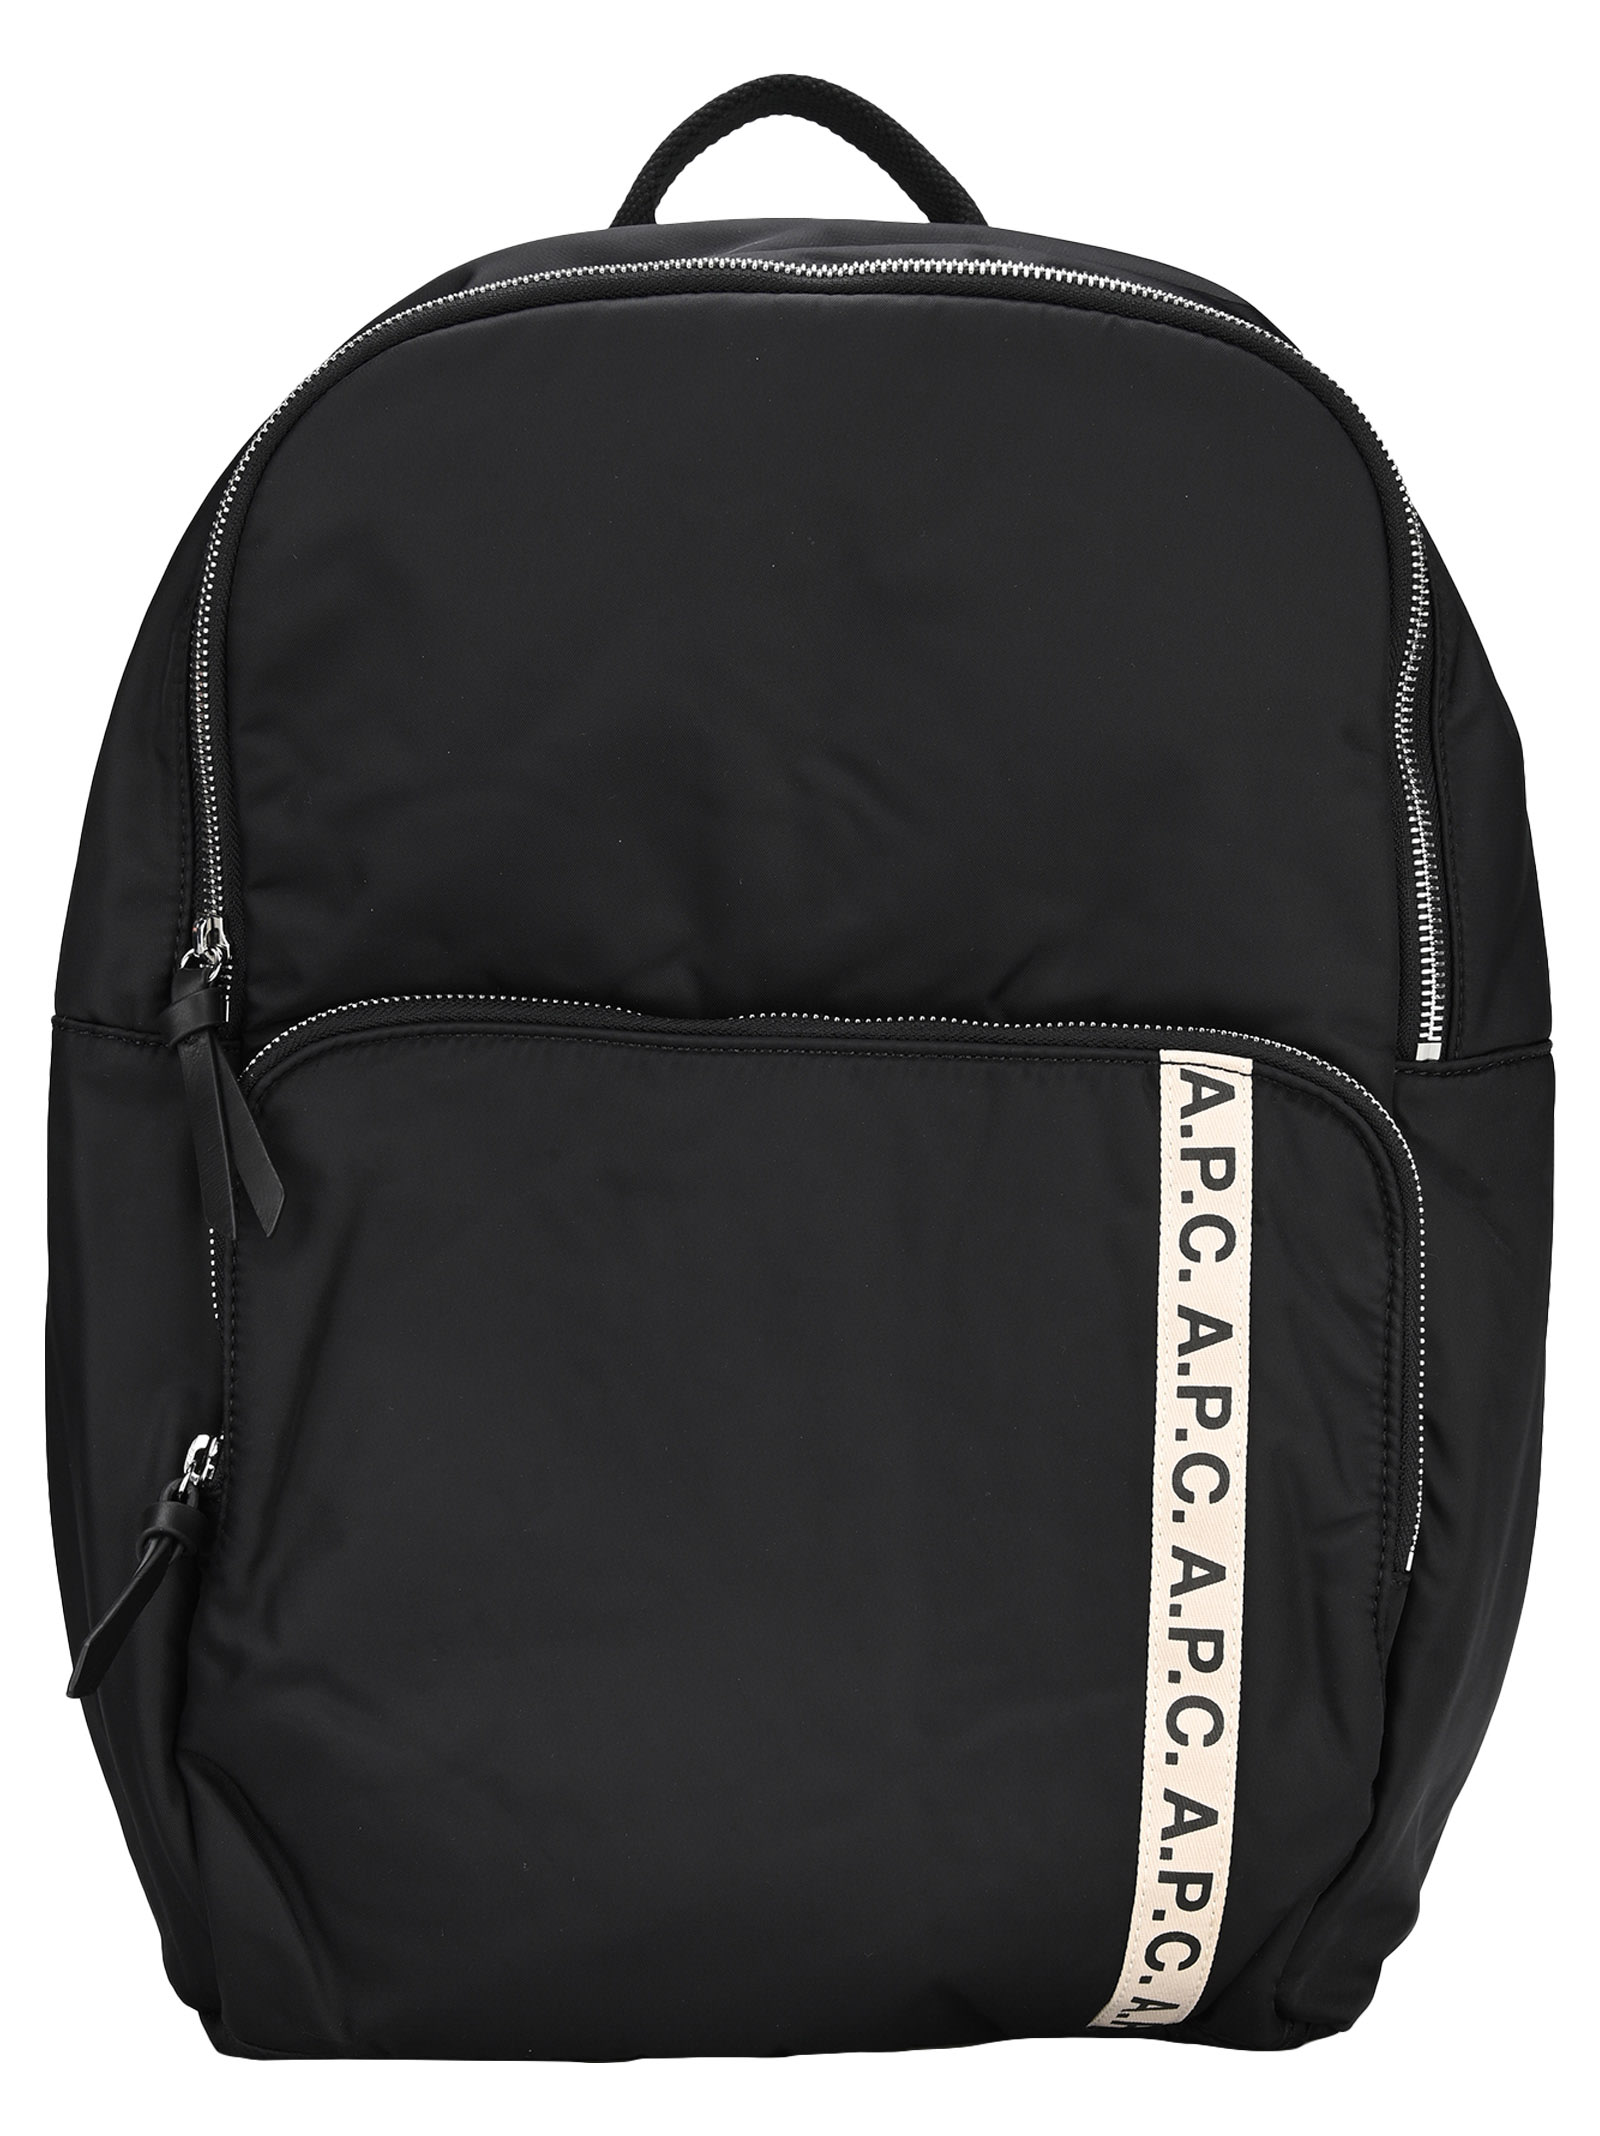 A.p.c. Repeat Backpack